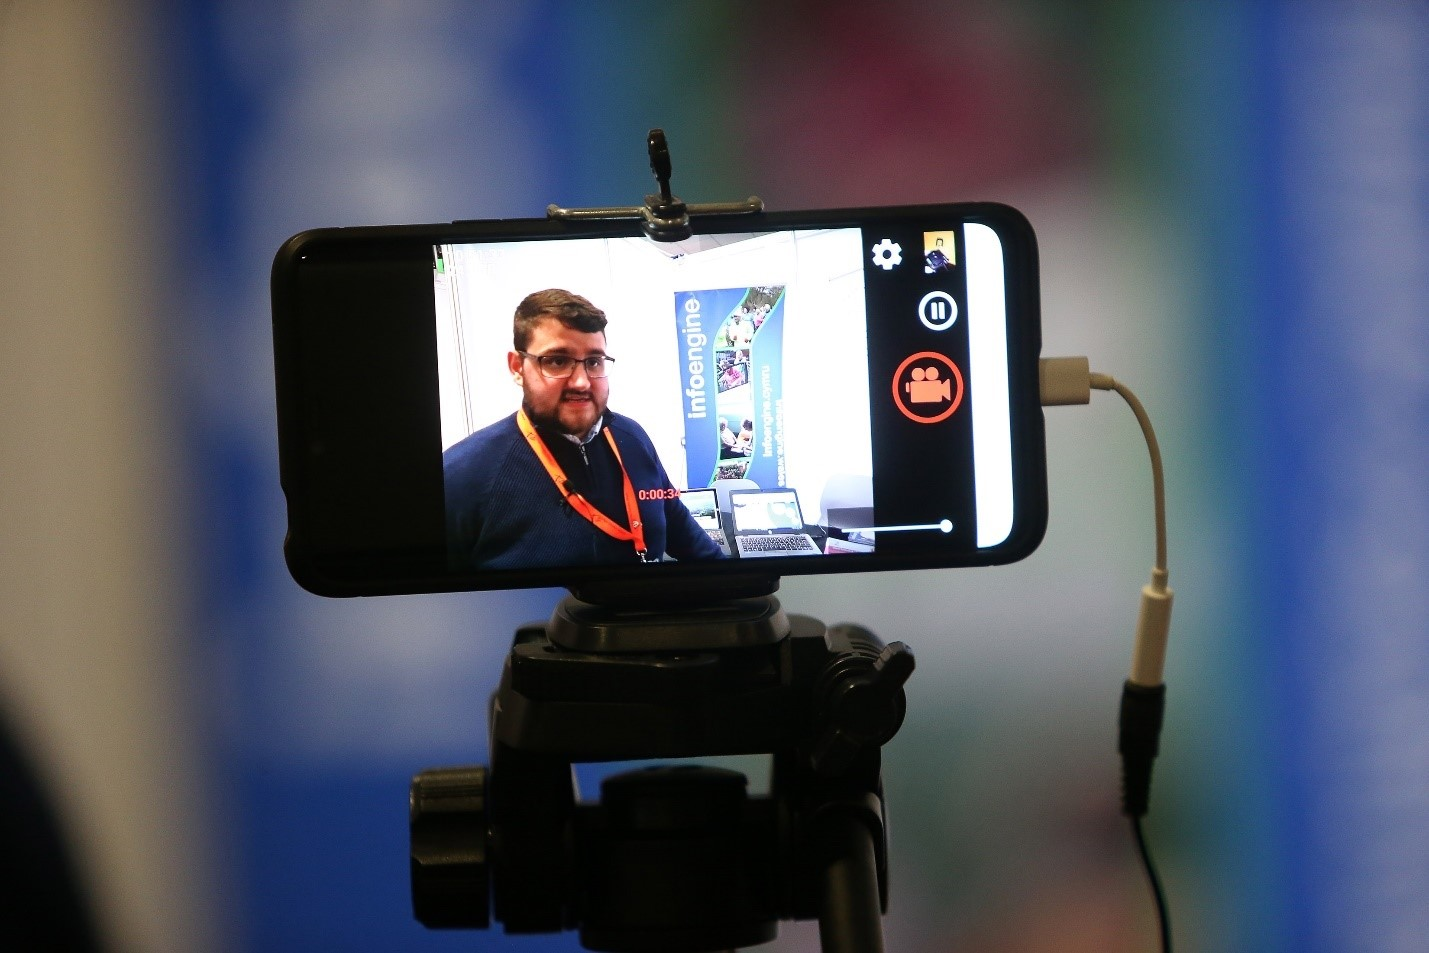 Picture of a man in front of an event stand as viewed on a phone screen